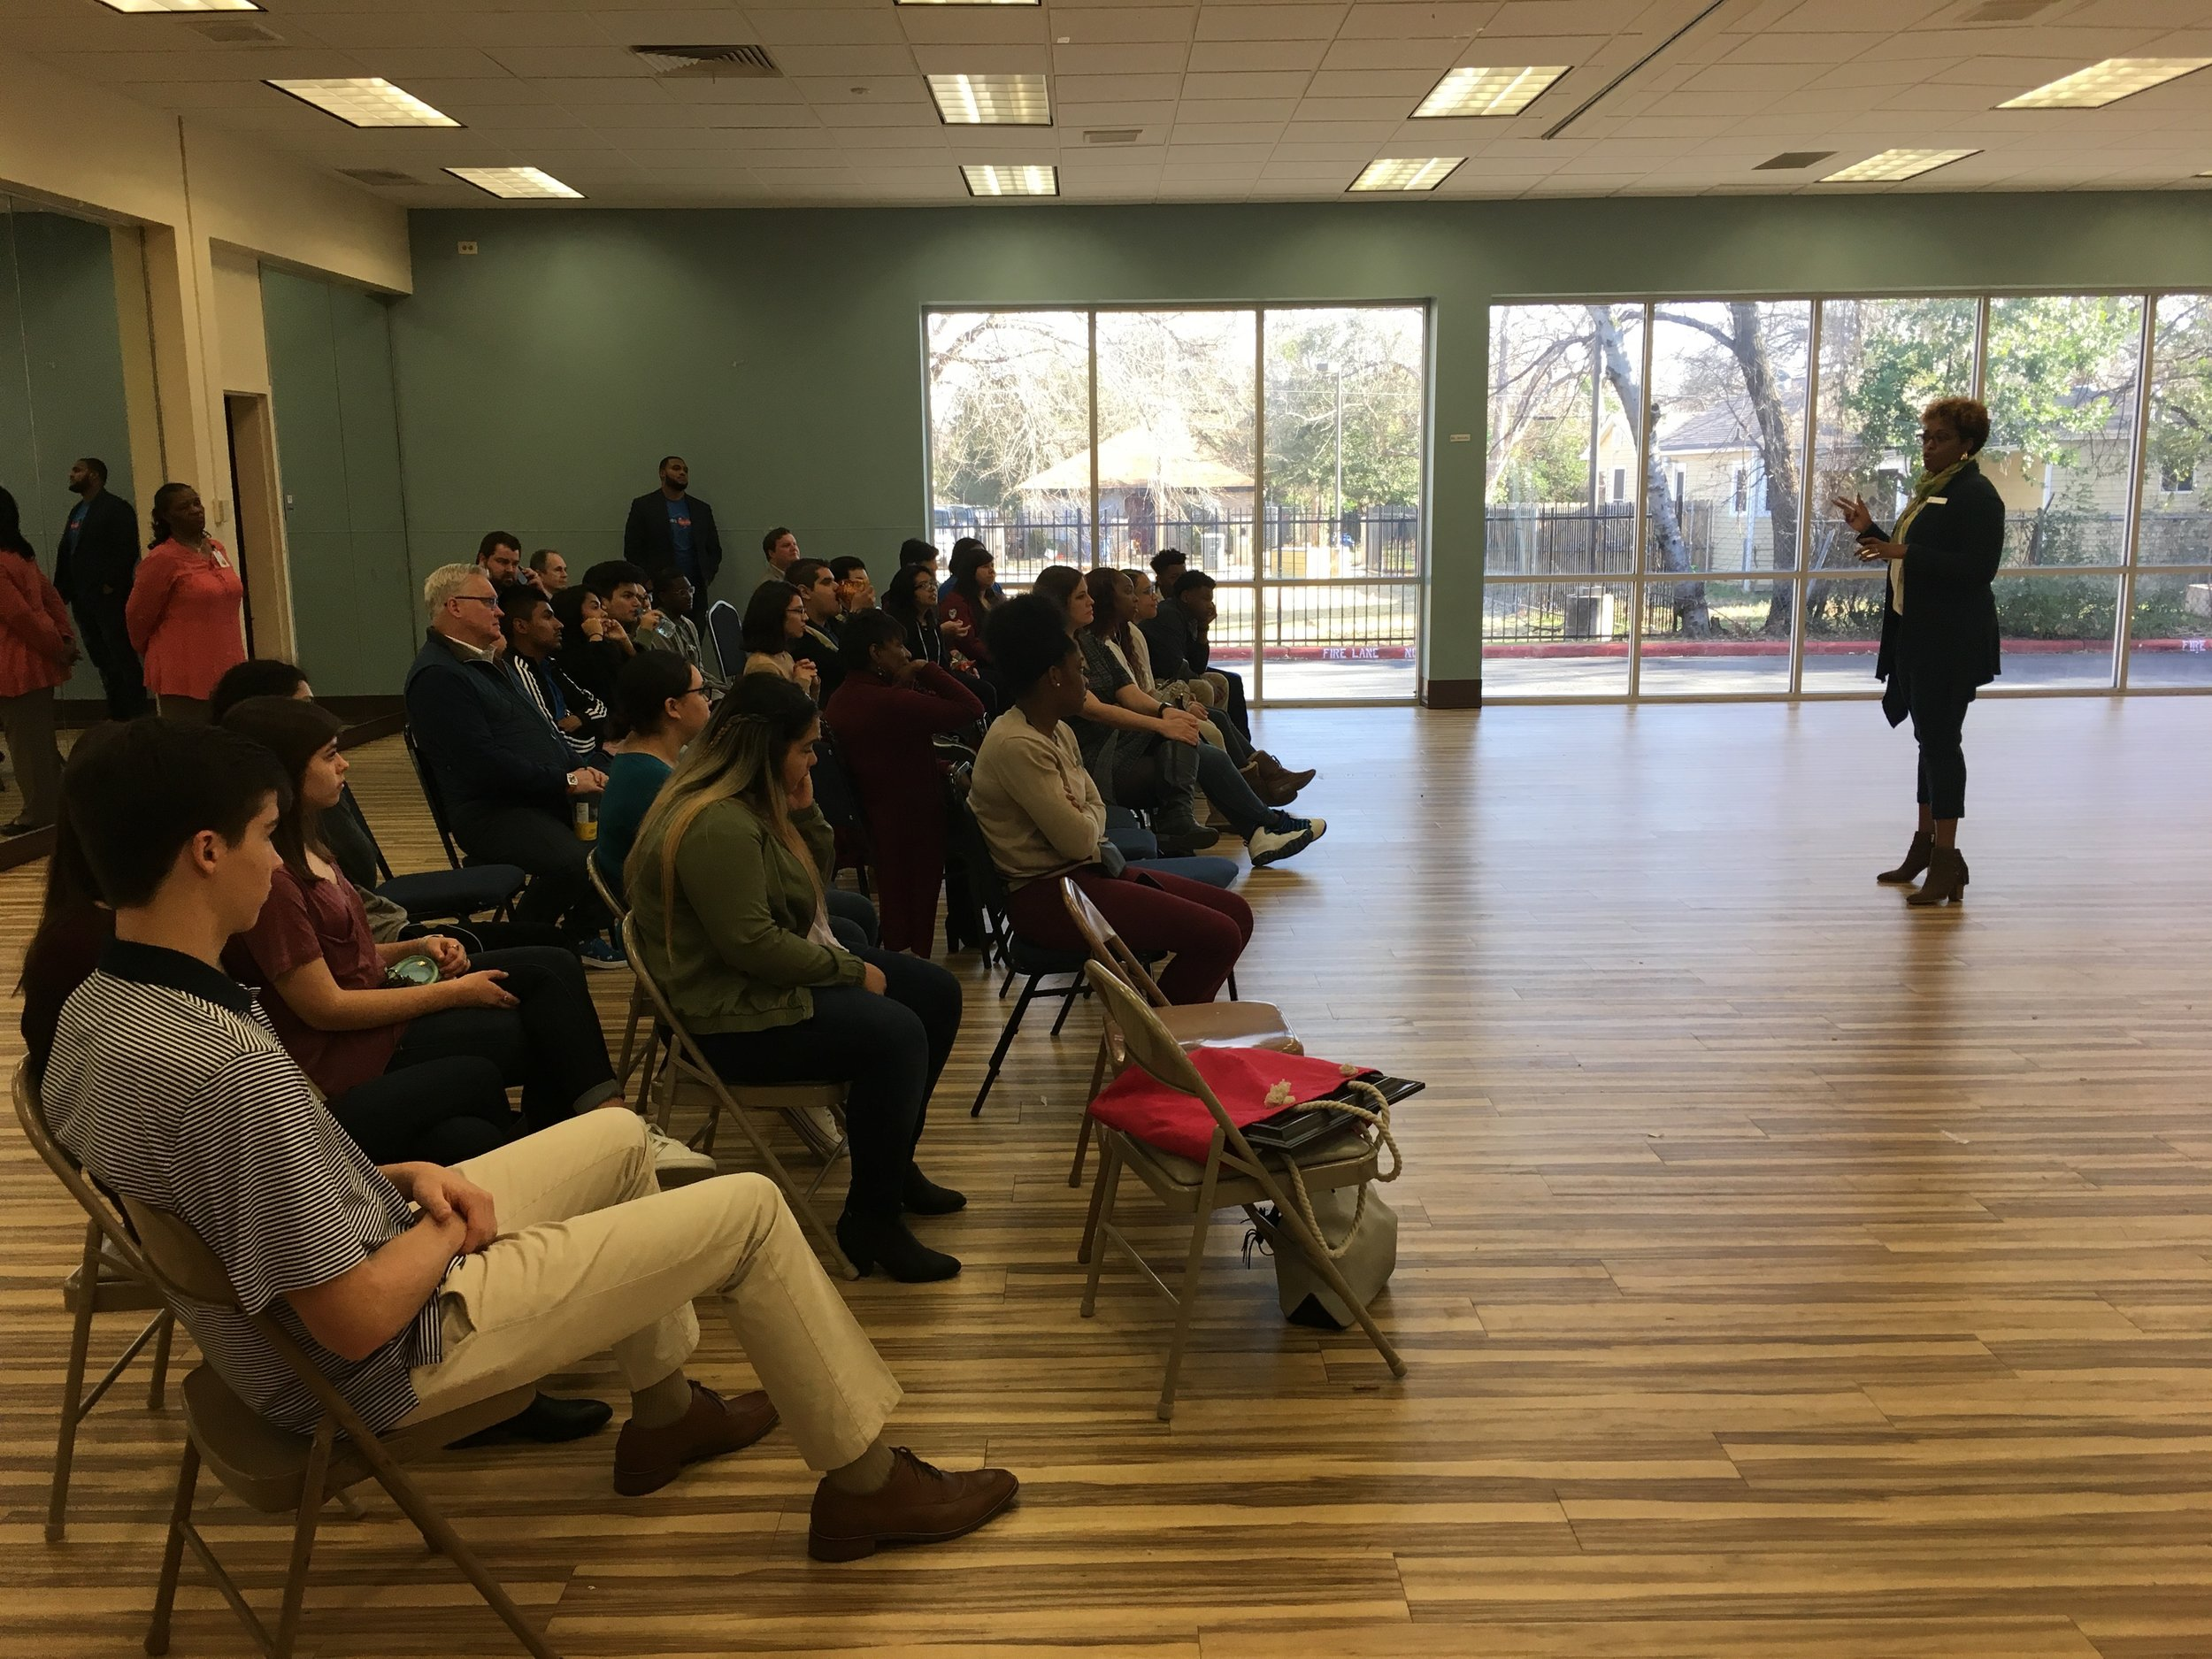 Feb 1, 2018 - MRSC Student Session - Executive Director Ms. Ross speaking to Mayor's Rising Star Council students, Neiman Marcus, DART and Mayor's Star Council representatives about the history of the Queen City neighborhood and the Park South YMCA.